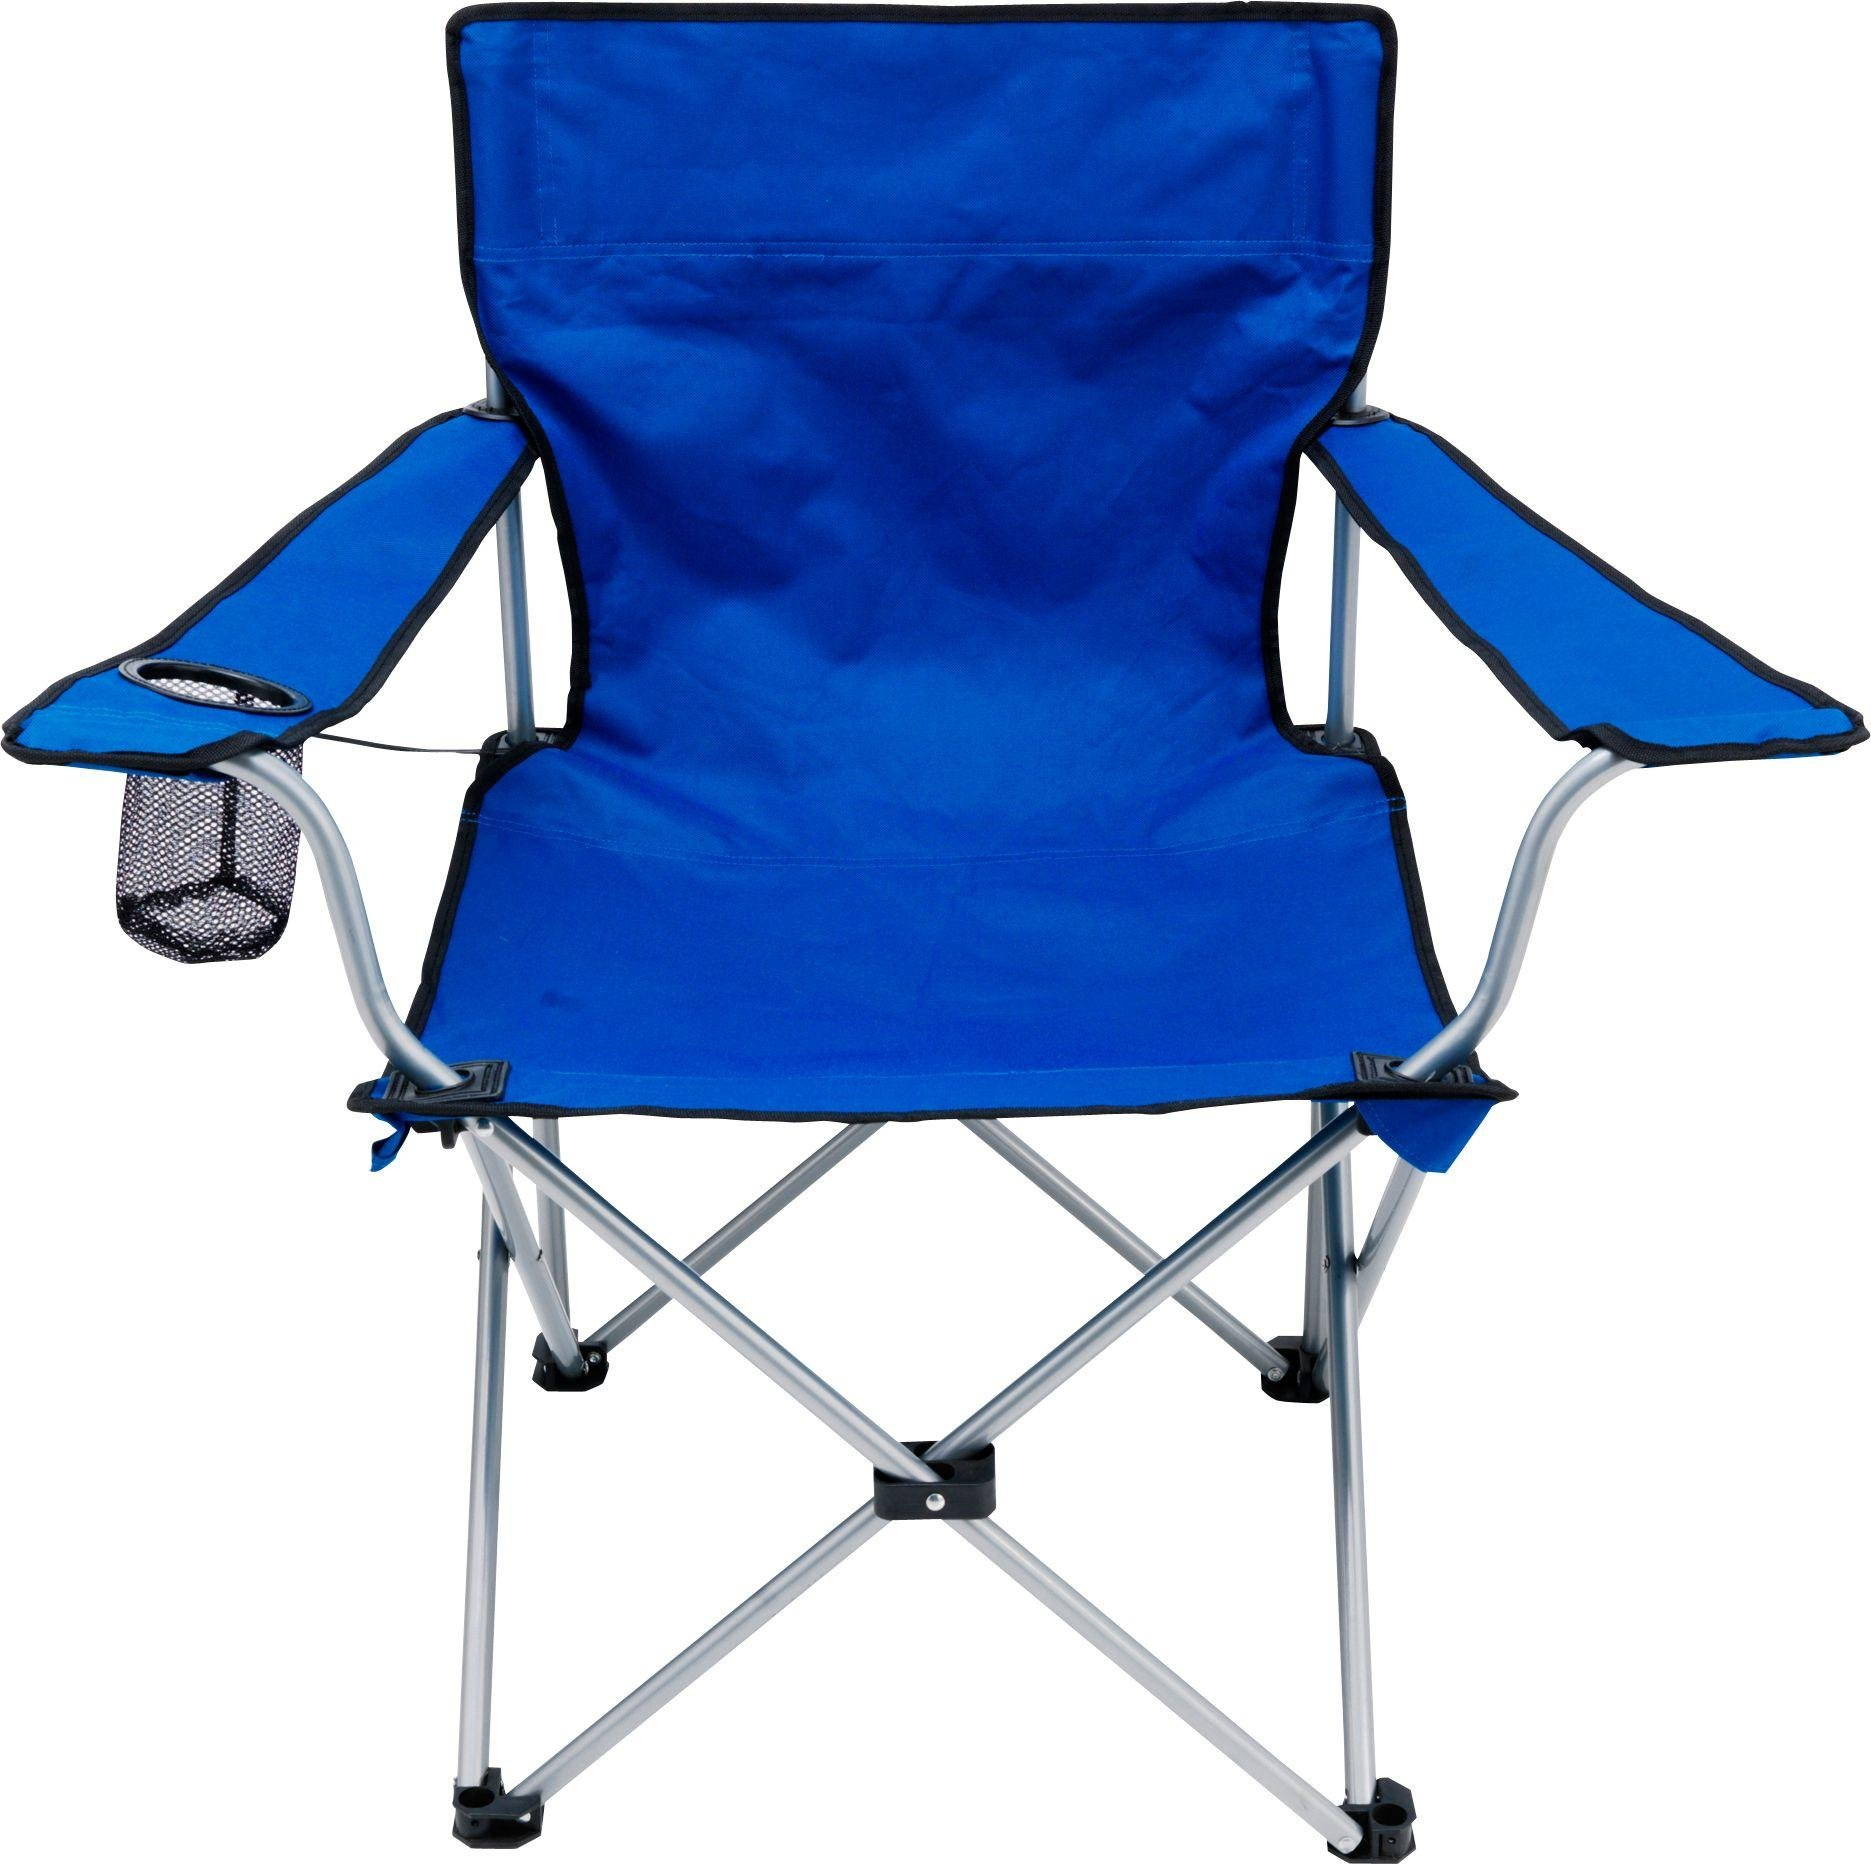 camp folding chairs sports bar tables and buy steel camping chair argos chair927 8321